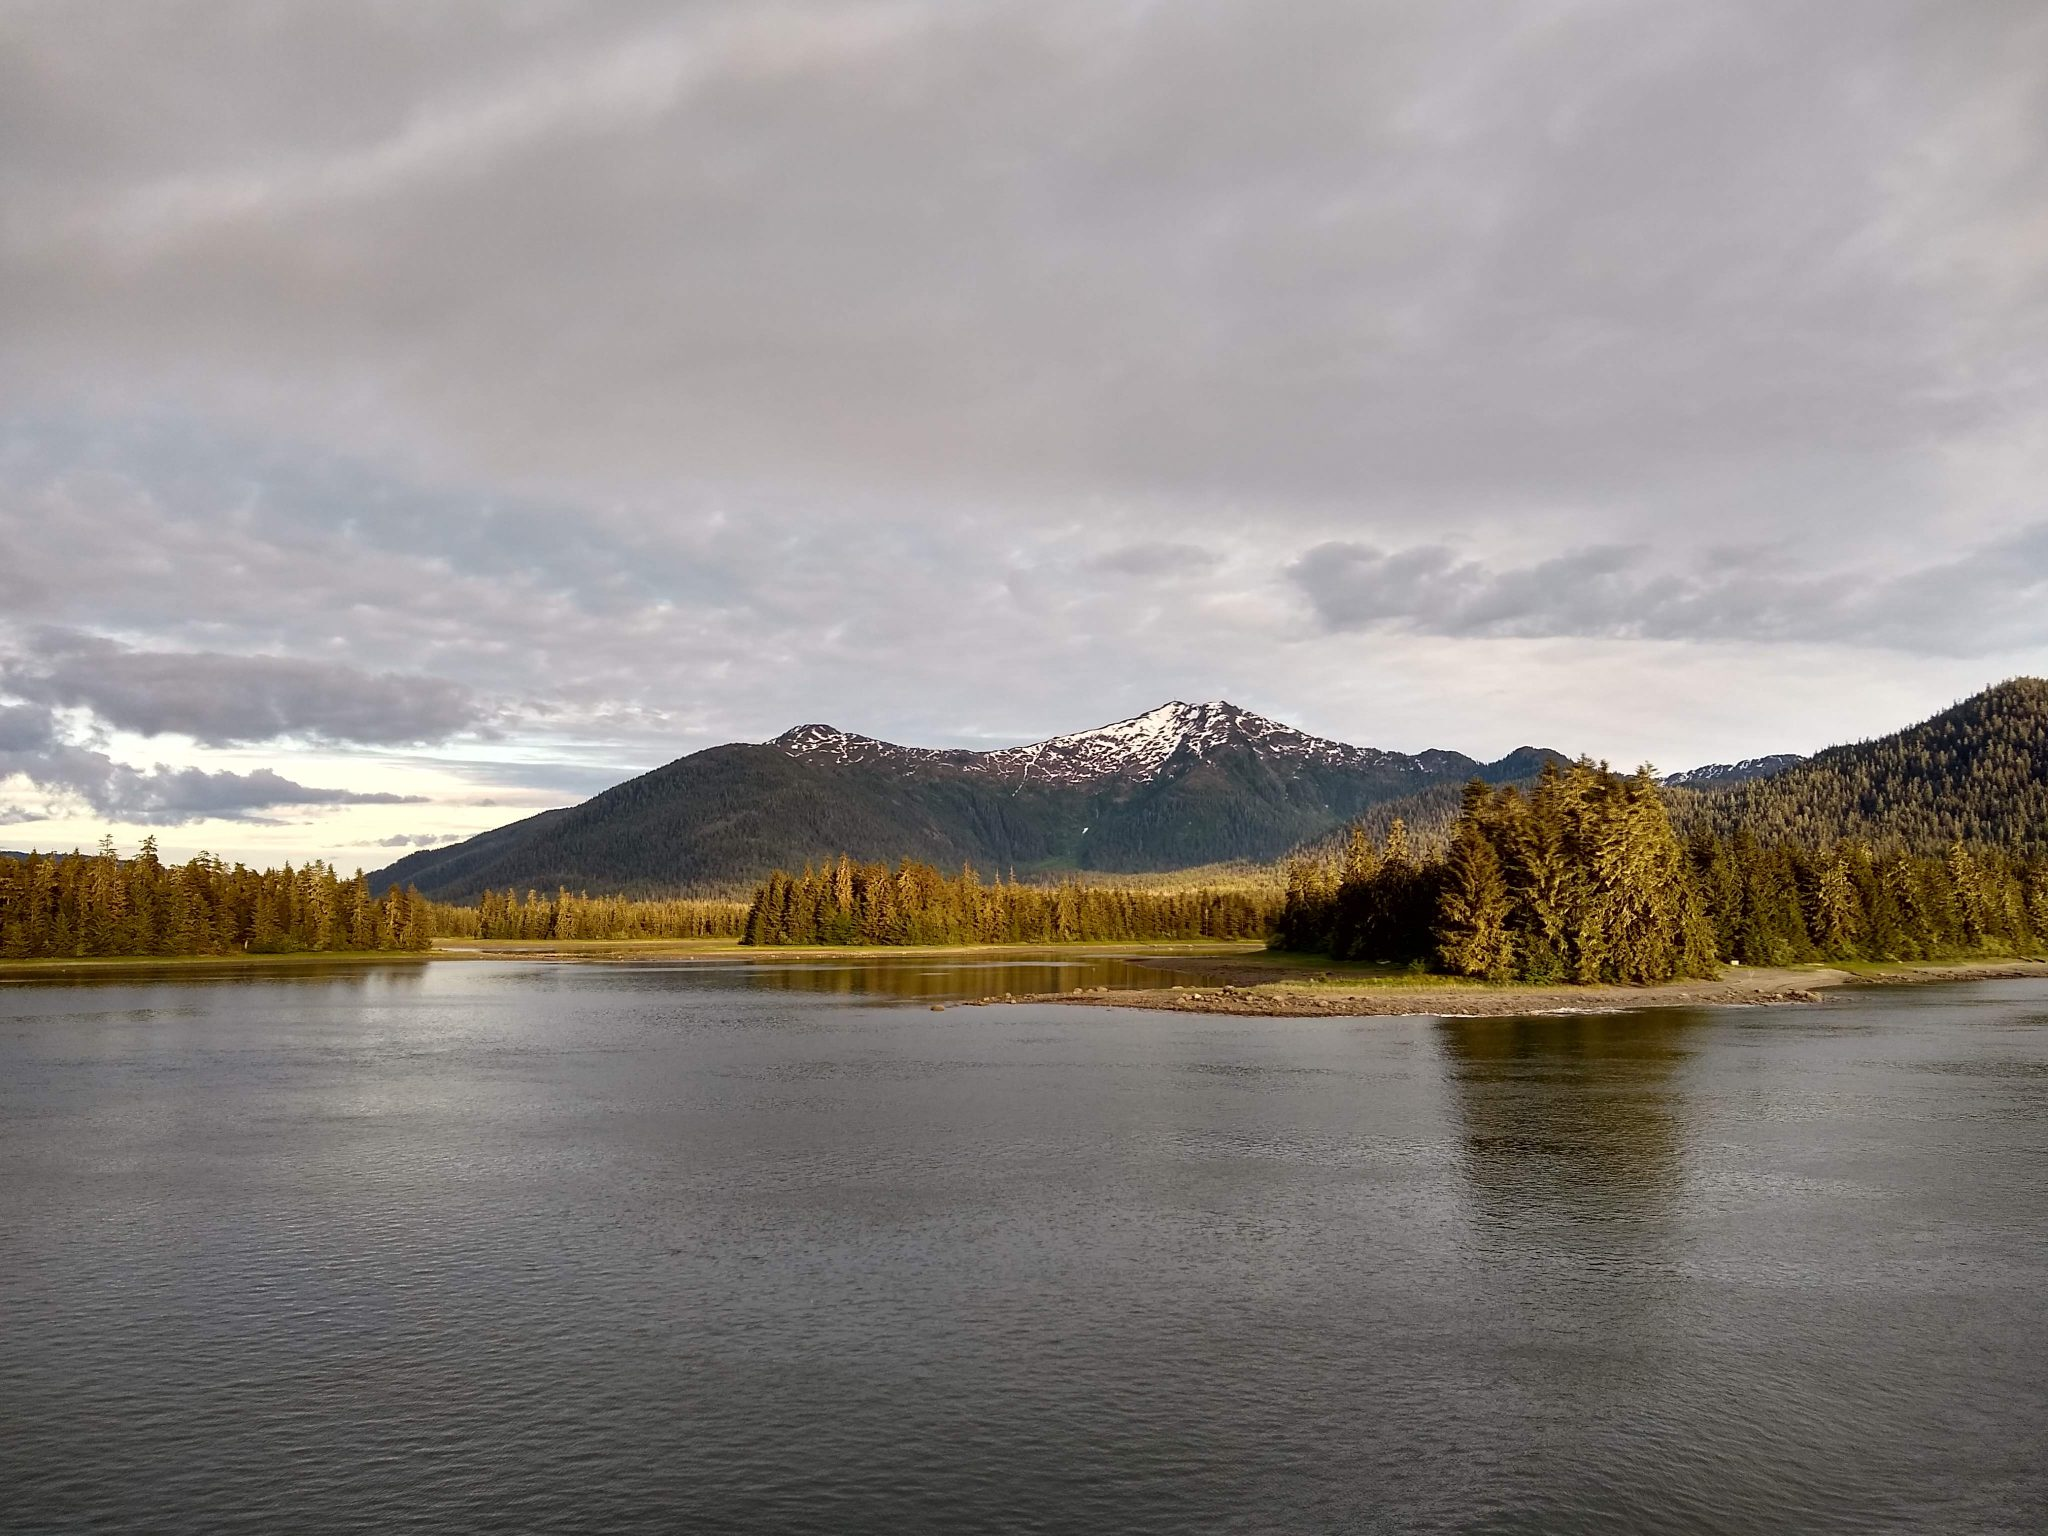 Calm waters in the foreground, green trees and higher mountains with a bit of snow in the distance on a cloudy day